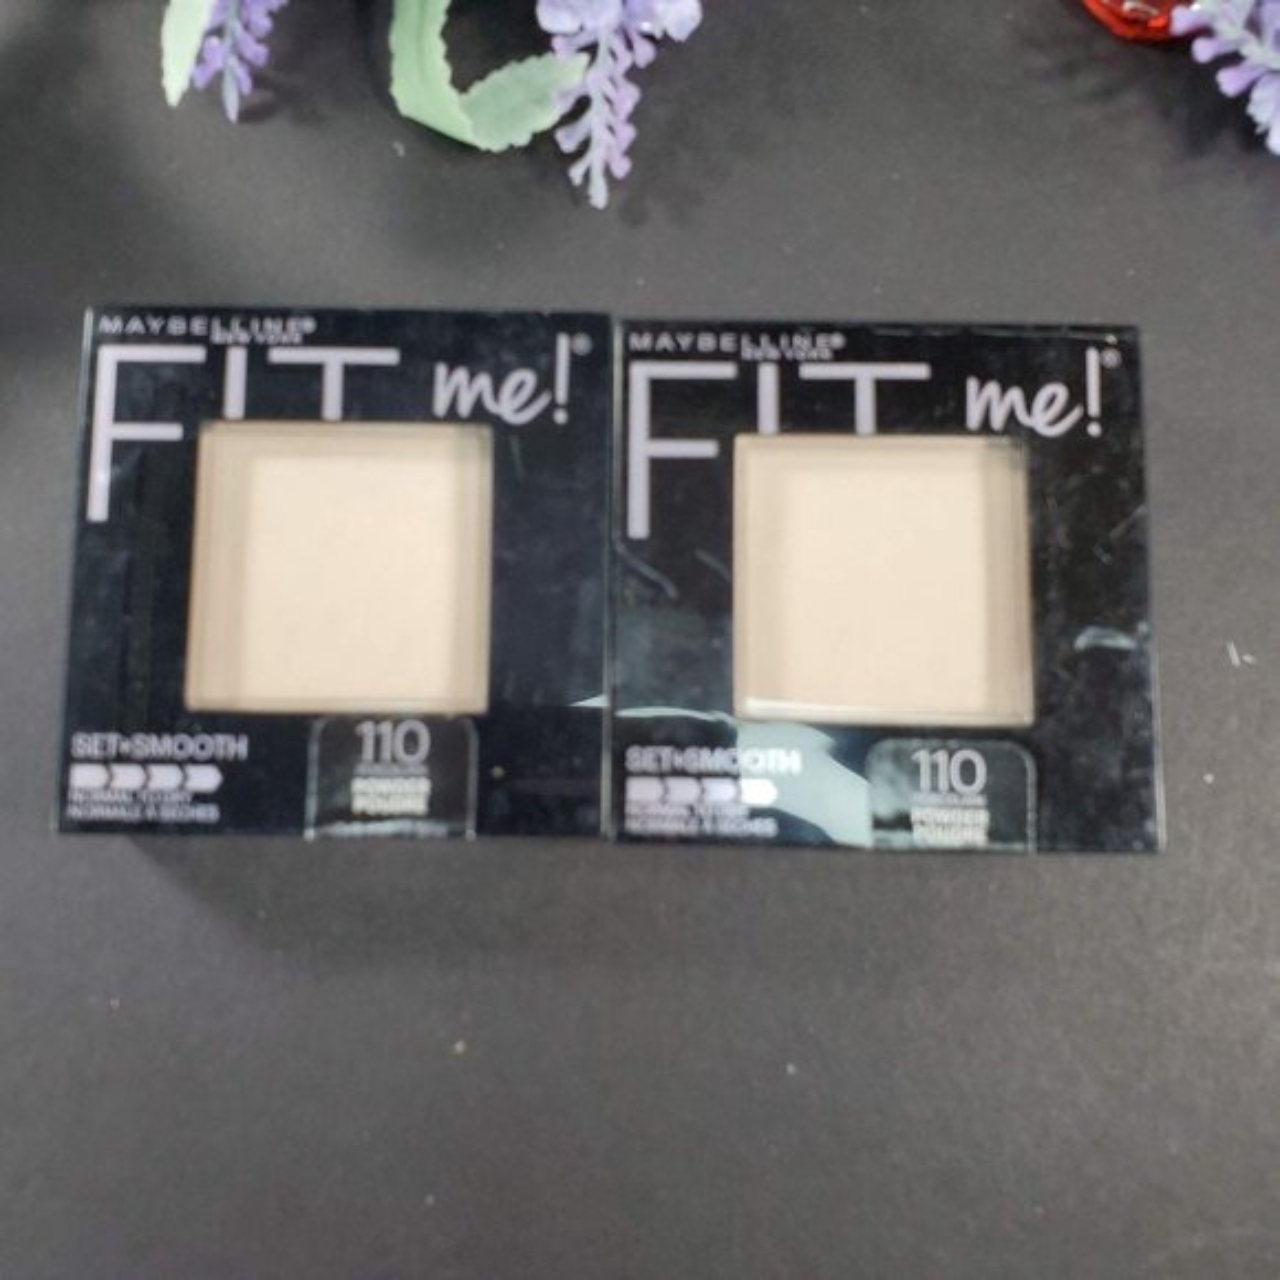 Product Image 1 - Maybelline Fit Me Pressed Powder